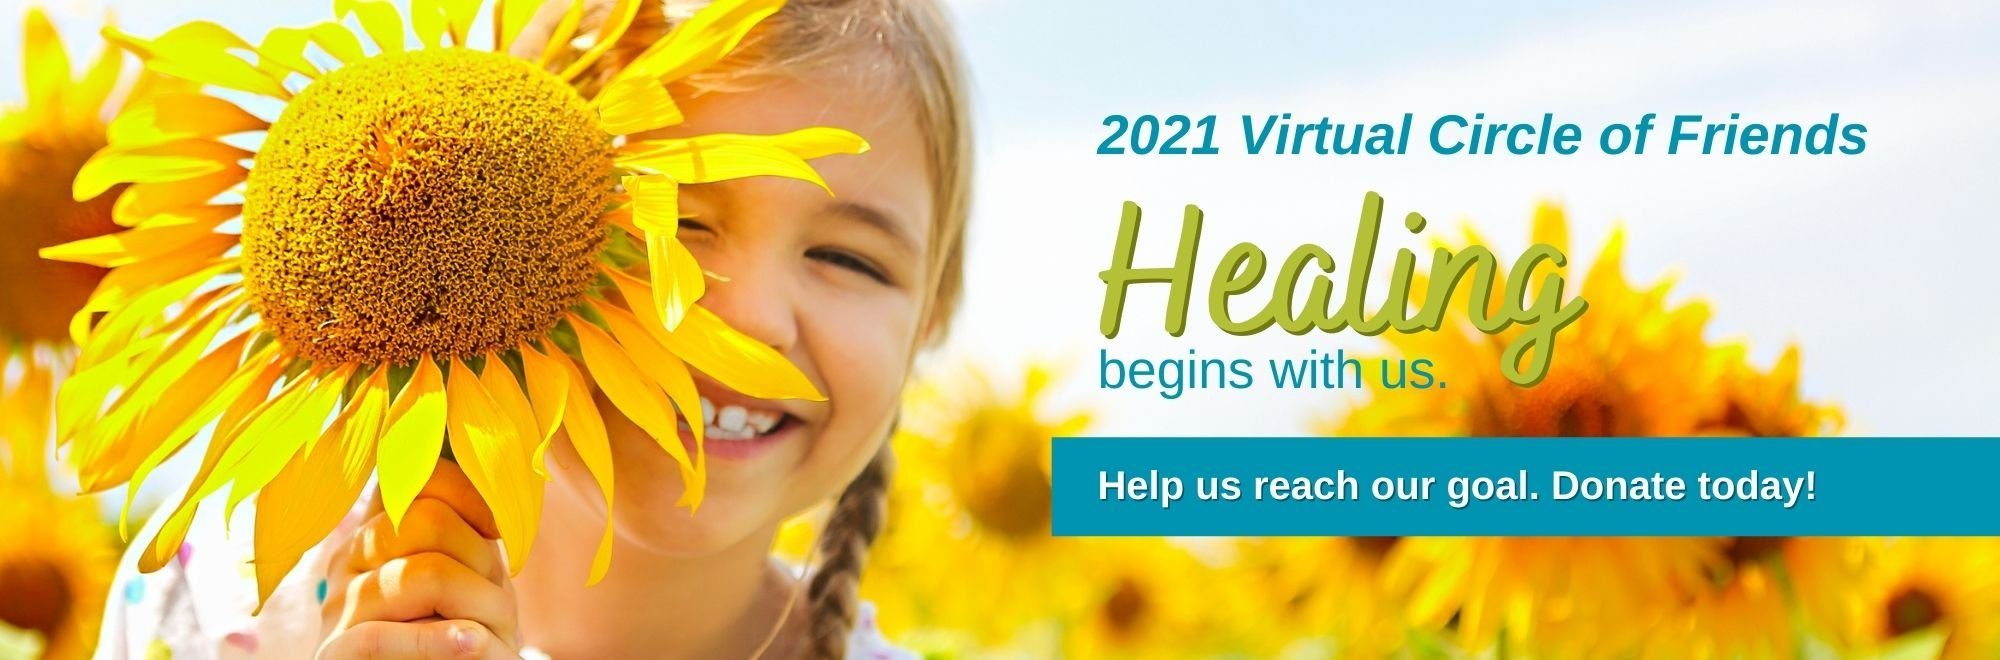 2021 Virtual Circle of Friends. Healing begins with us. Help us reach our goal. Donate Today.